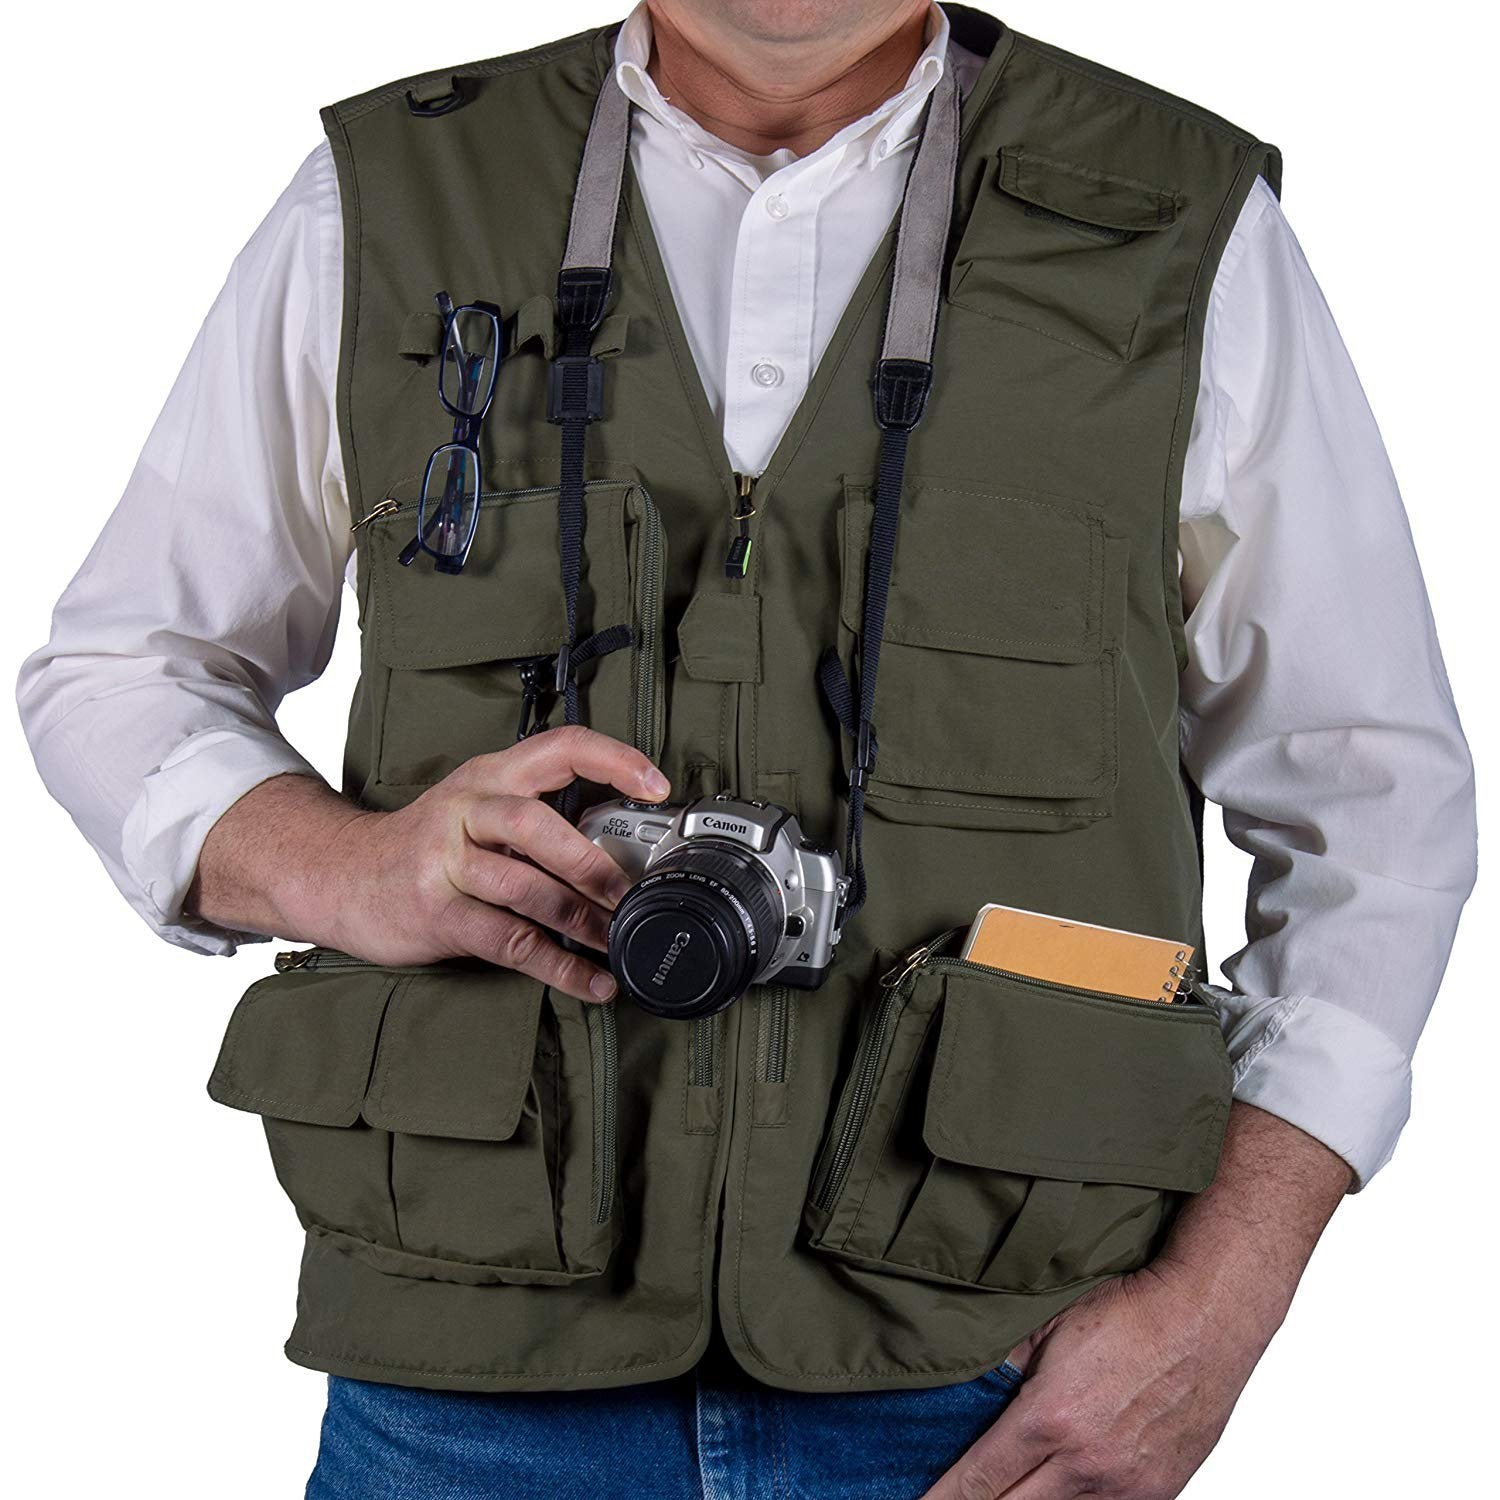 Outdoor Lightweight Mesh Fabric Vest With 16 Pockets